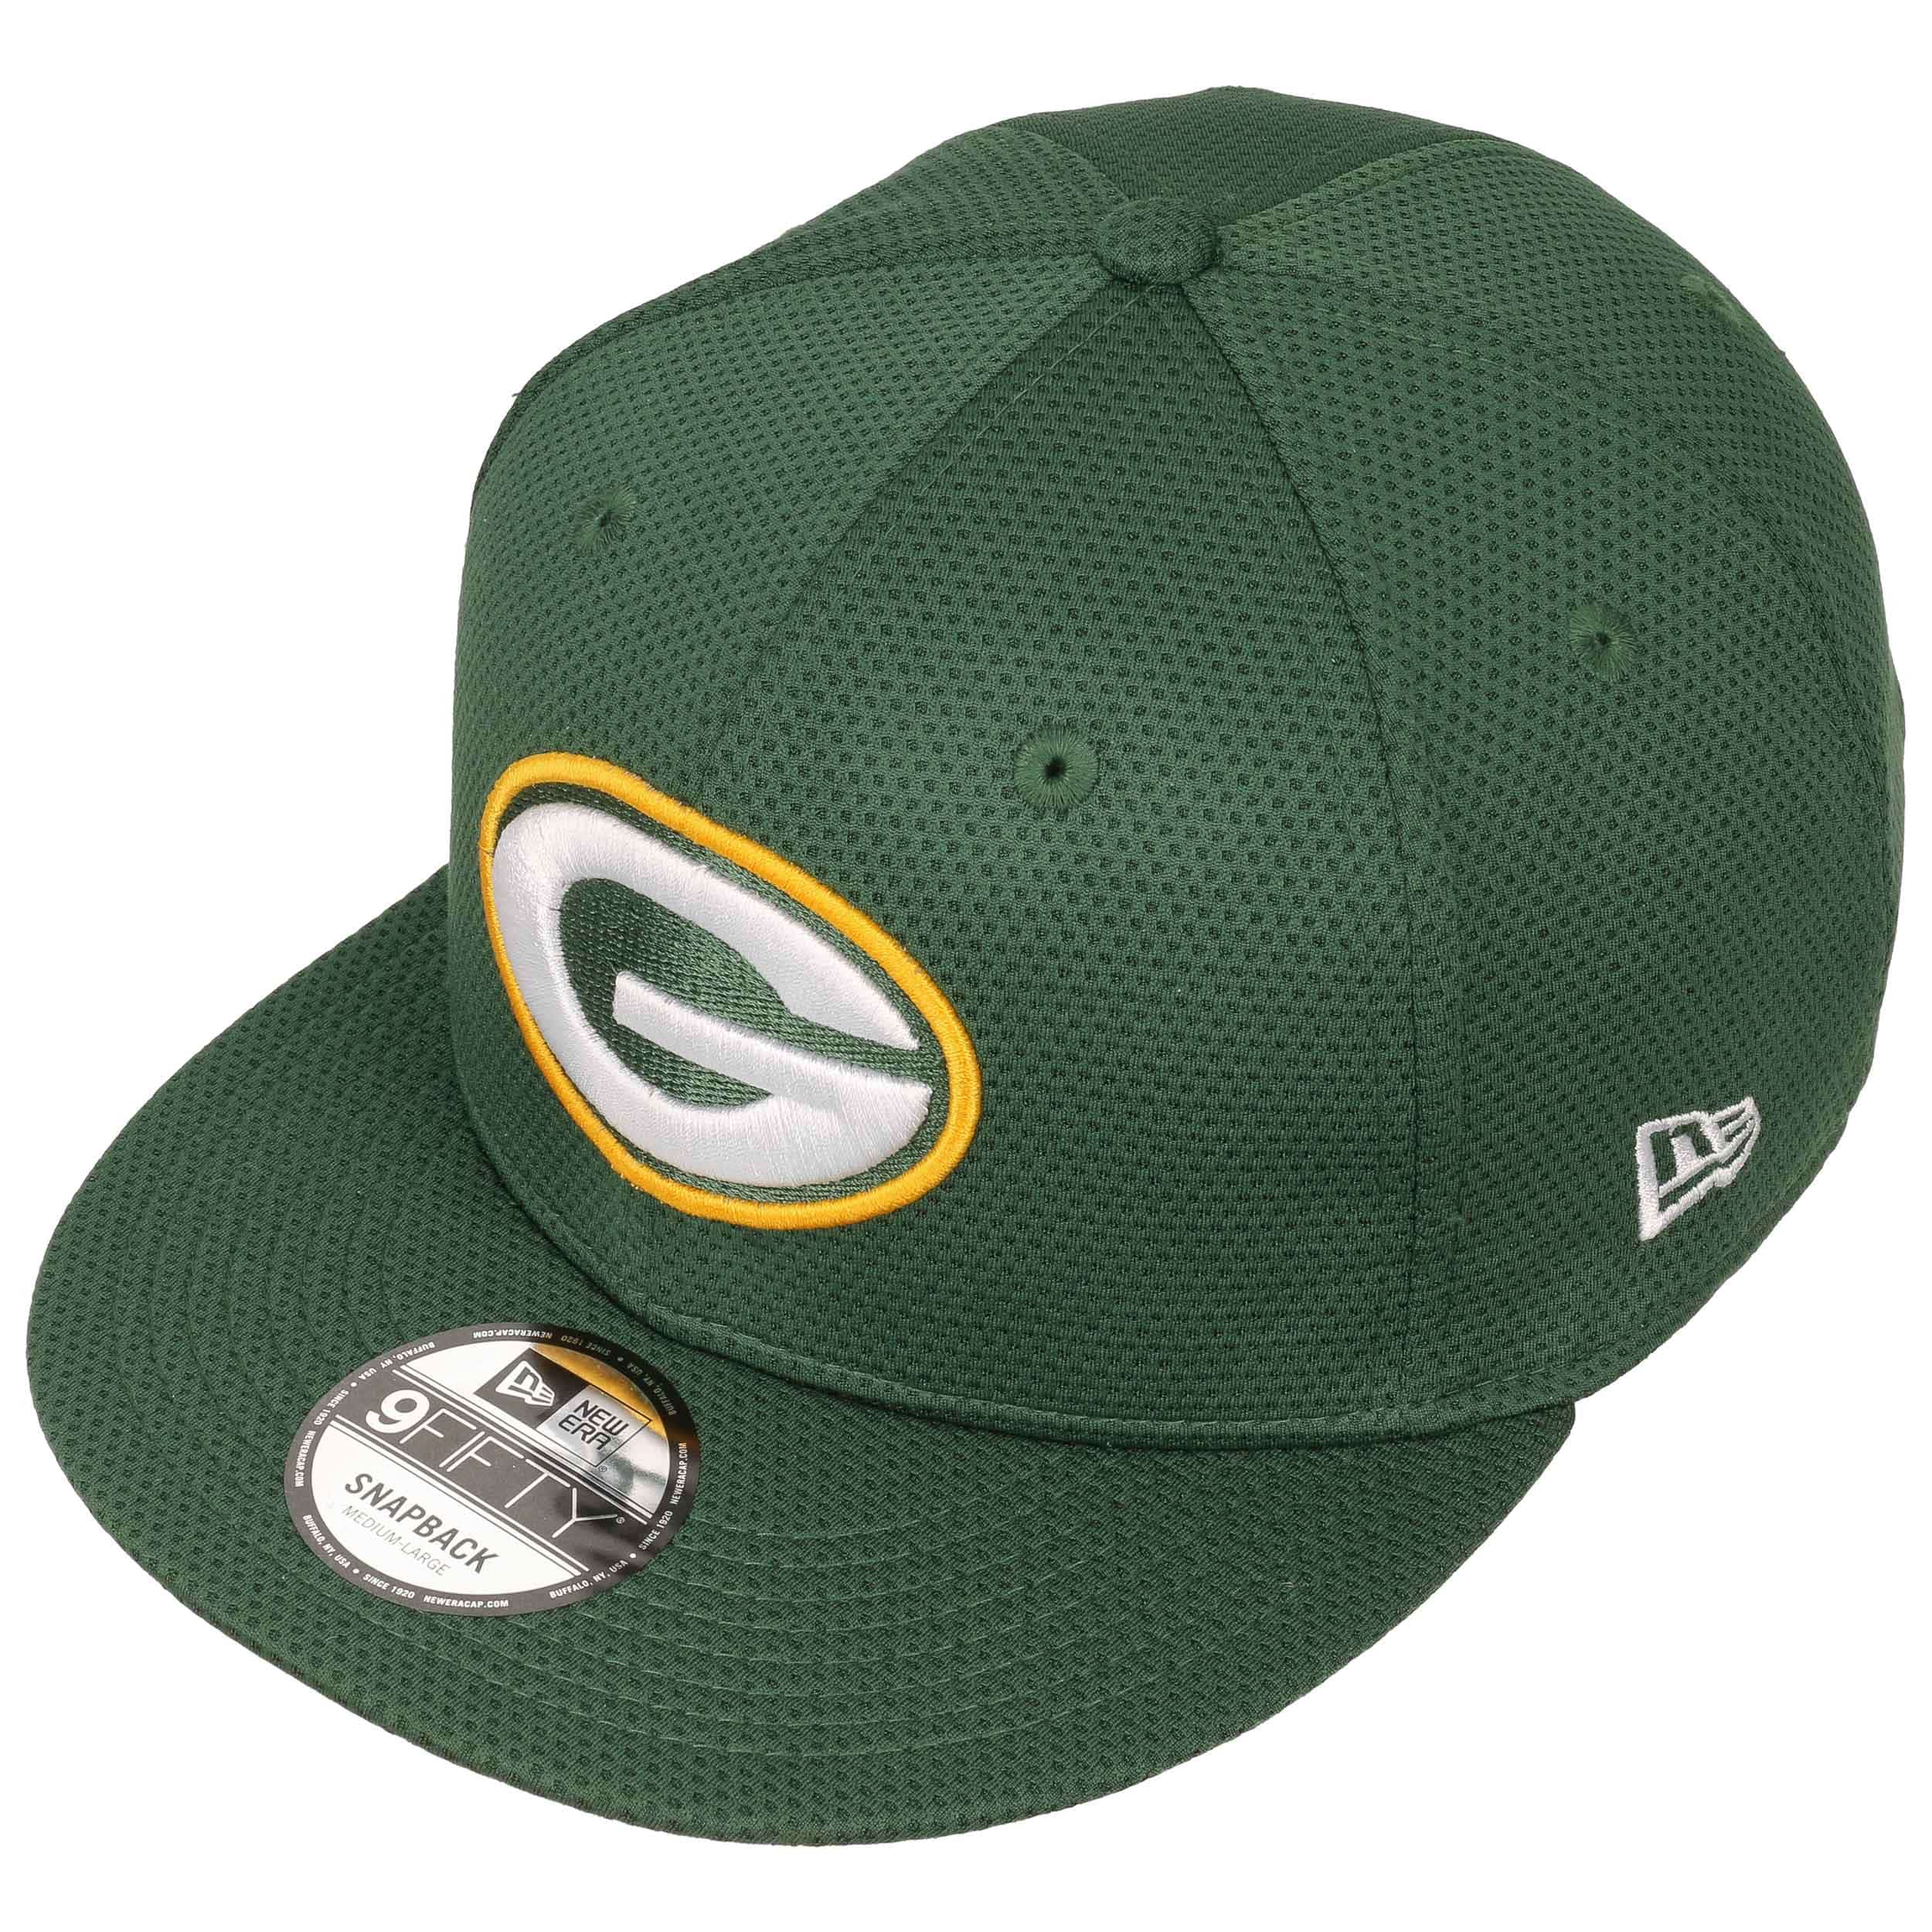 Gorras Green Bay Packers